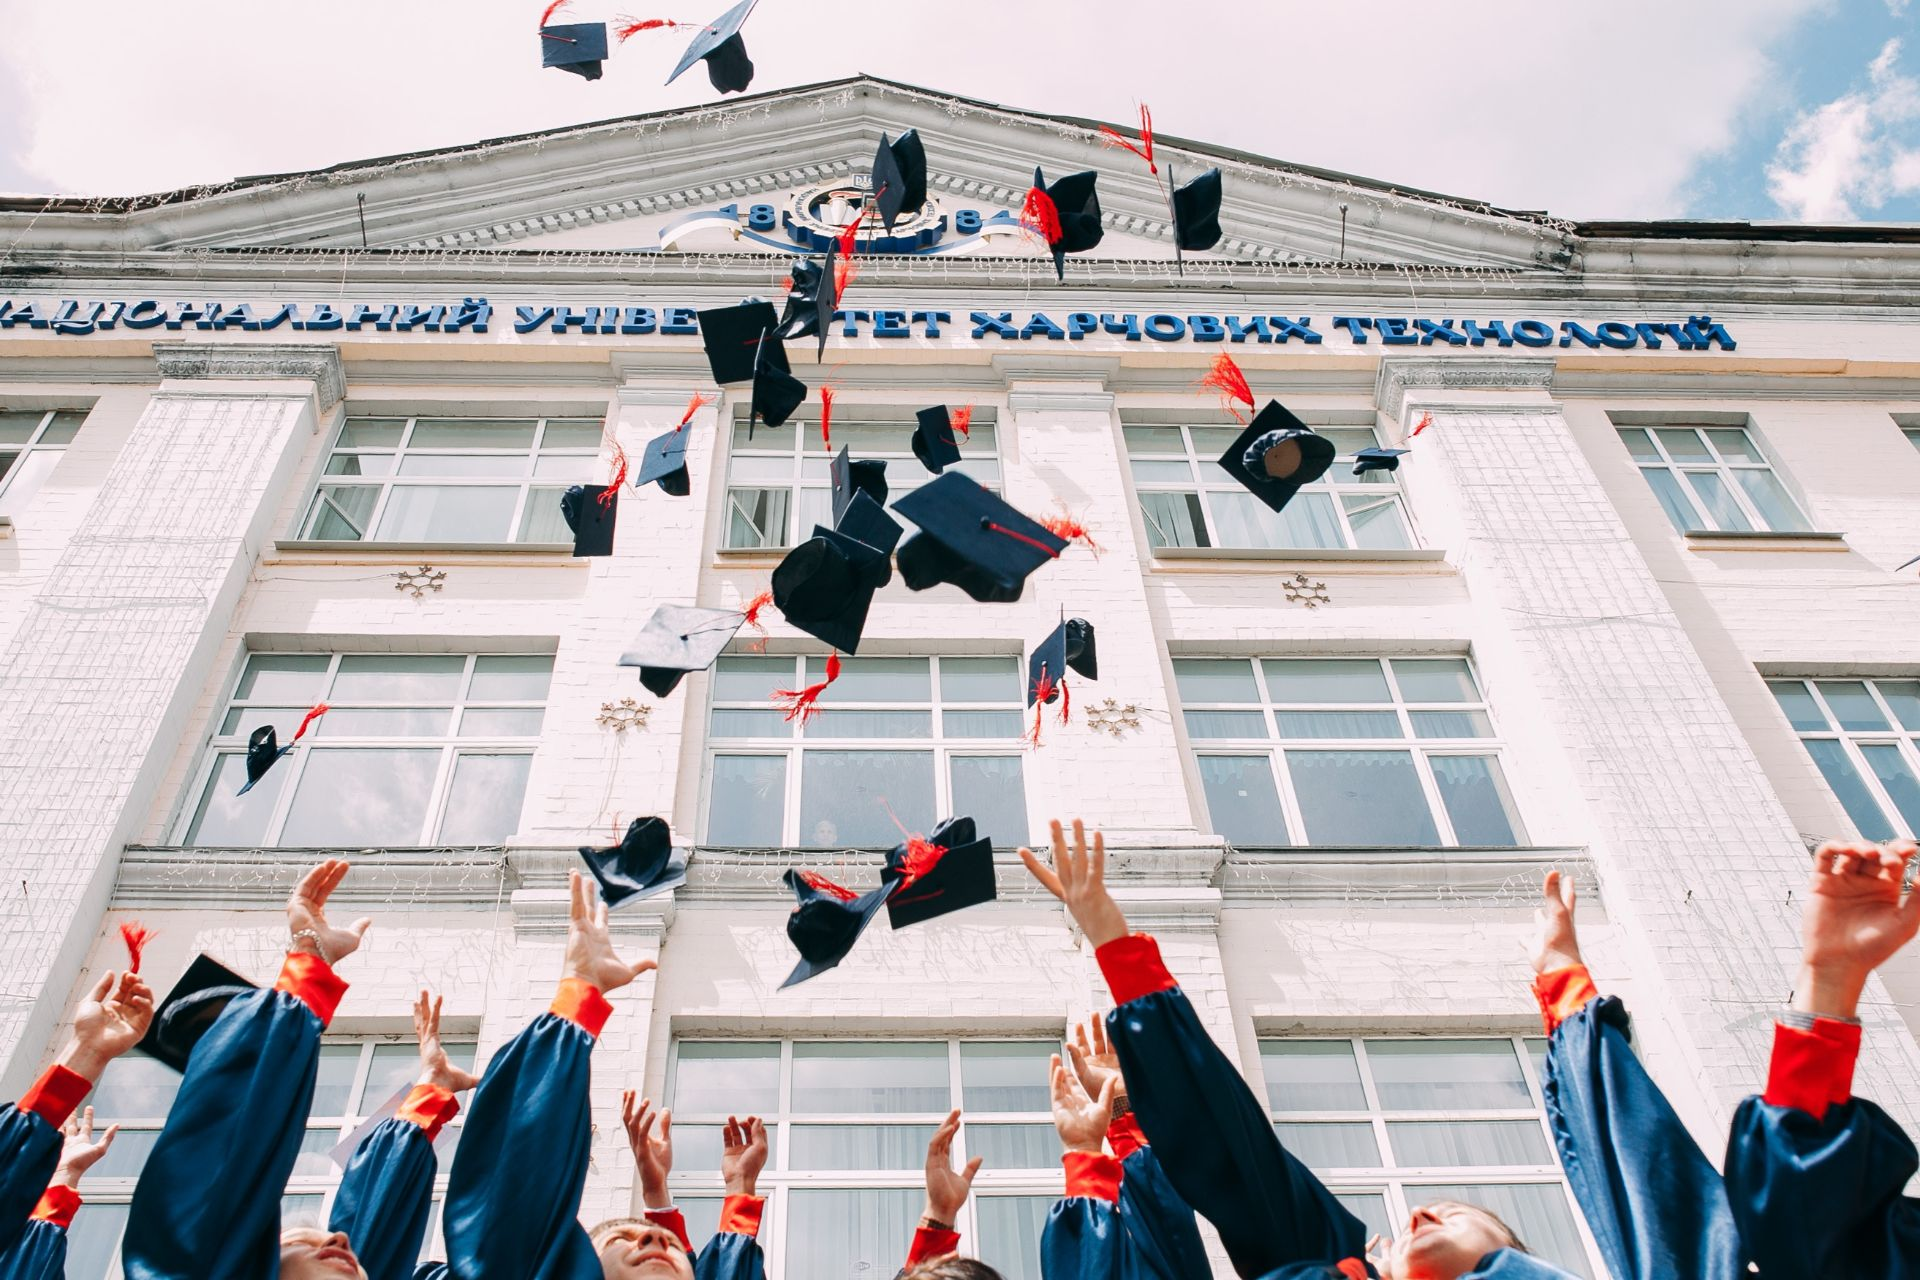 Graduates from university celebrating and throwing their mortar boards up in the air in front of a historic university building. 9 Things I Wish I Knew When I Started University